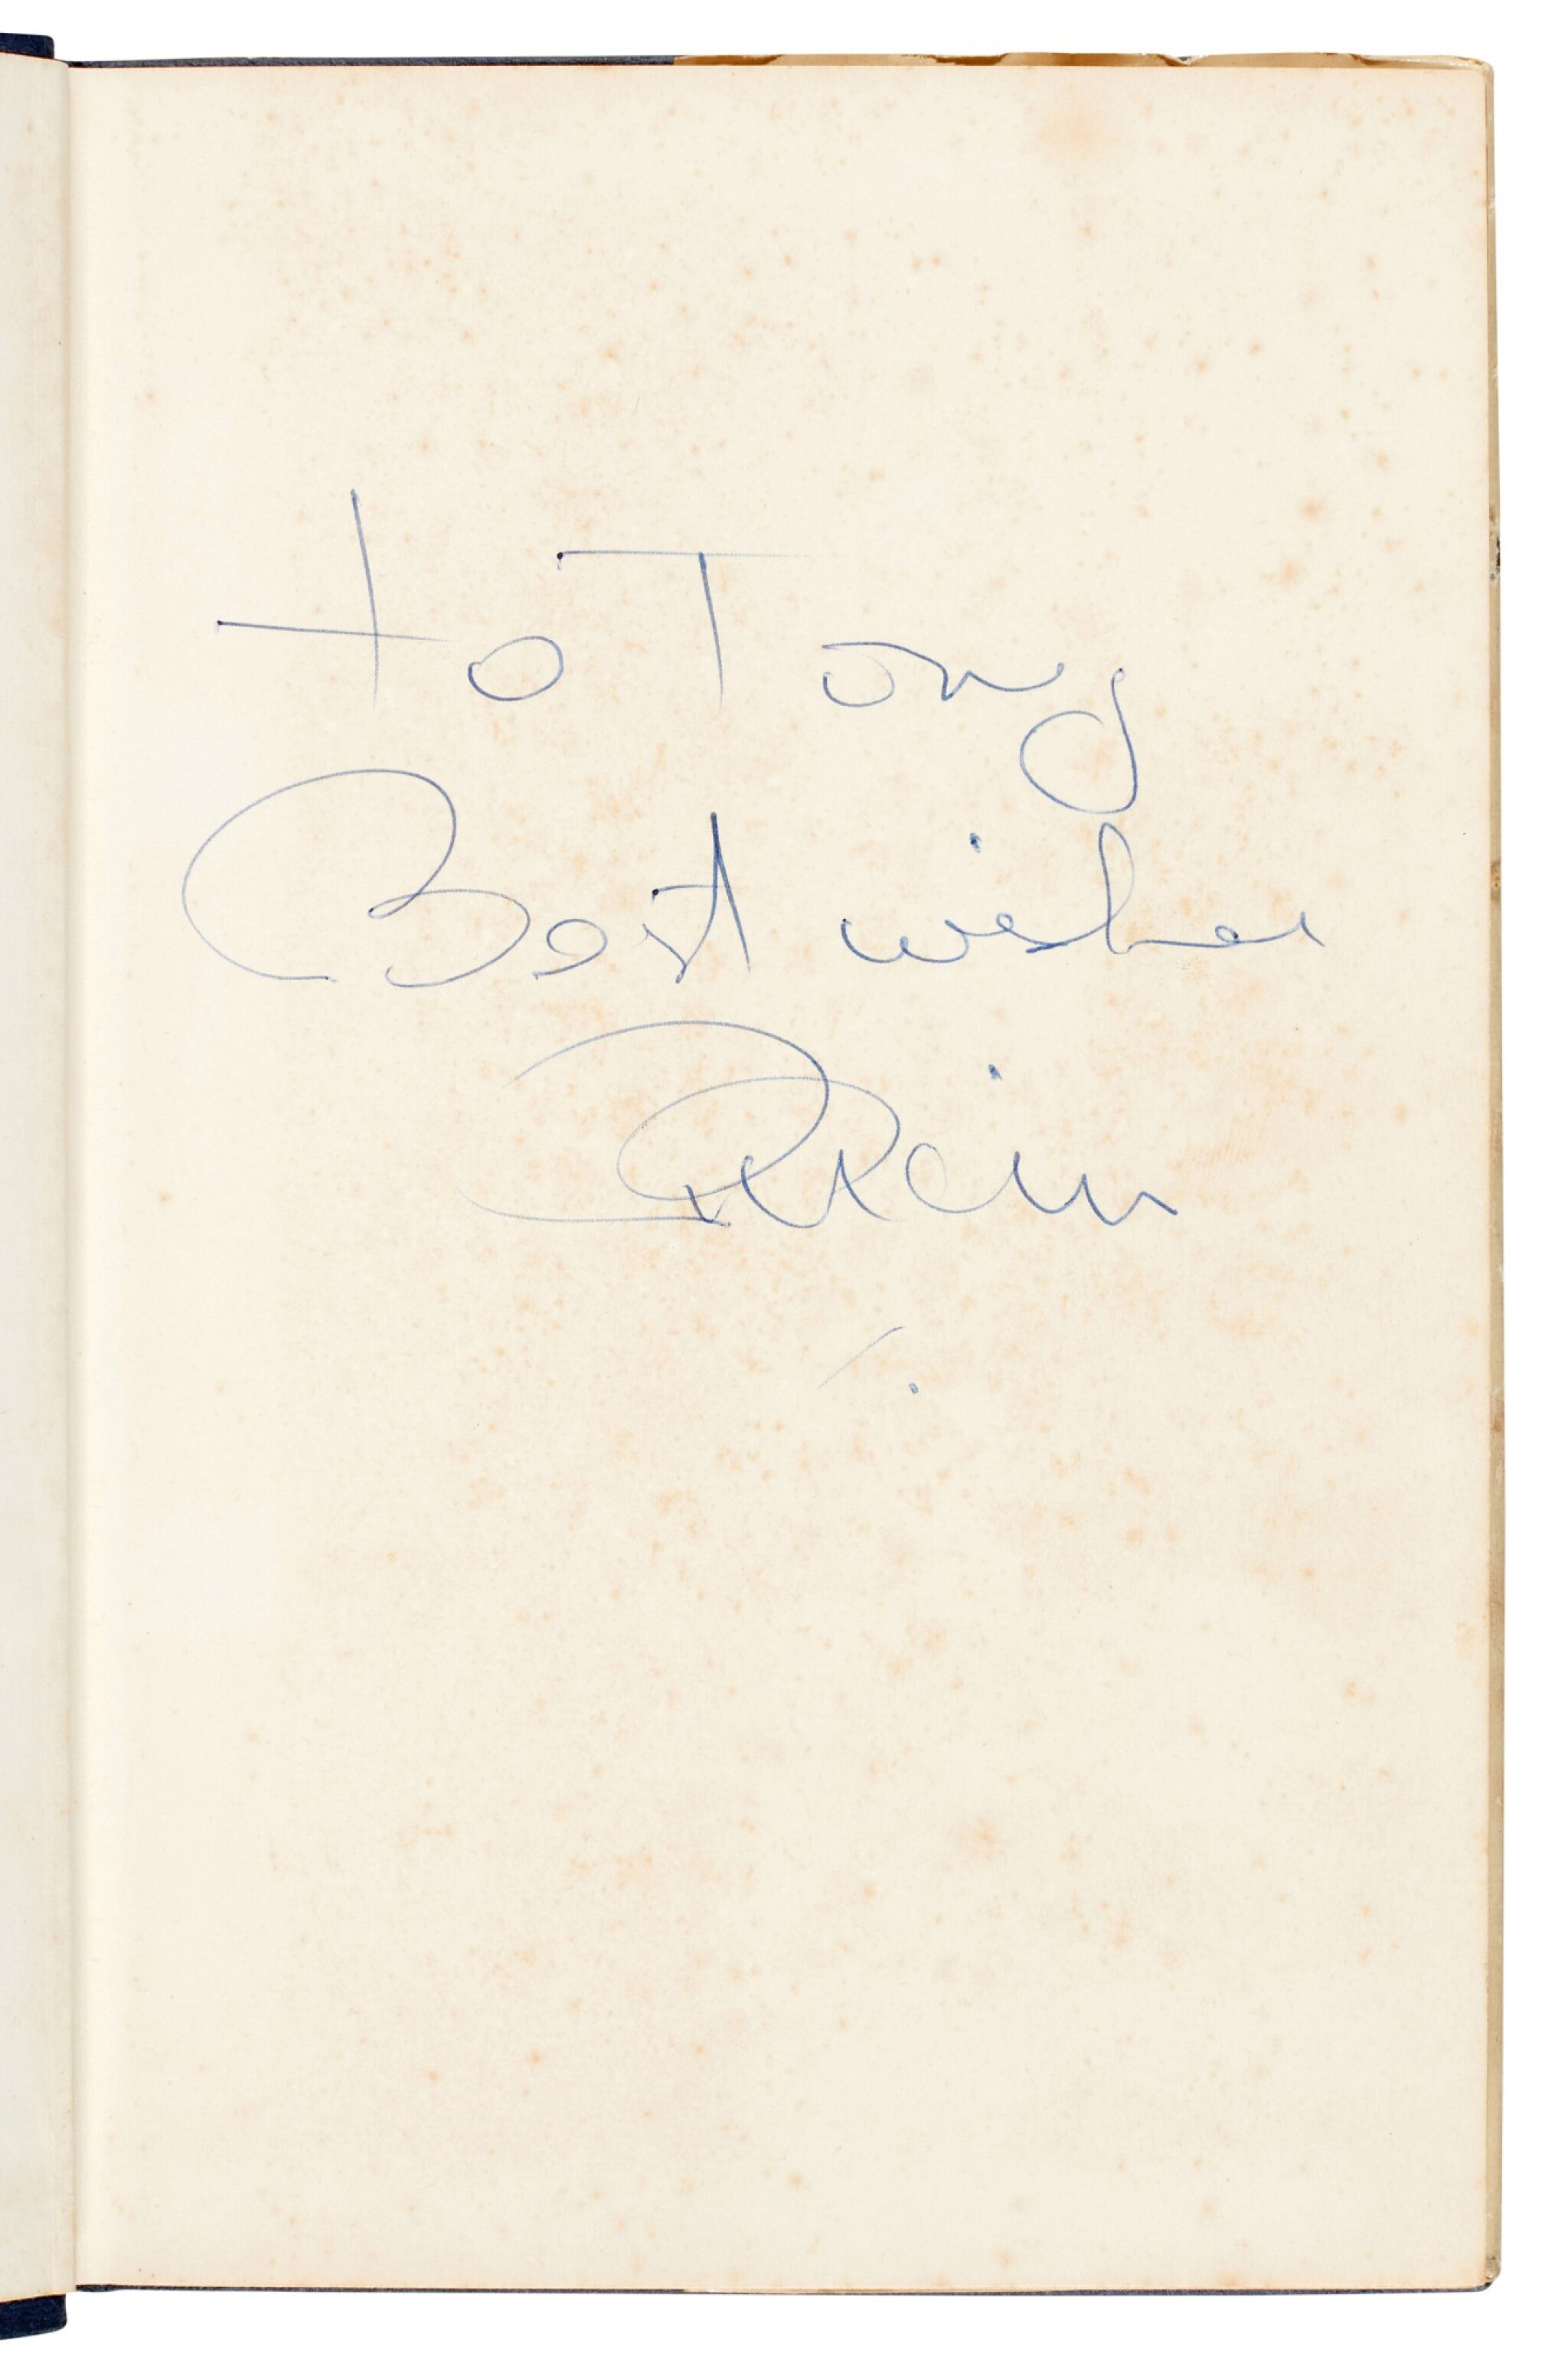 View full screen - View 1 of Lot 28. EPSTEIN | A Cellarful of Noise, 1964, inscribed.